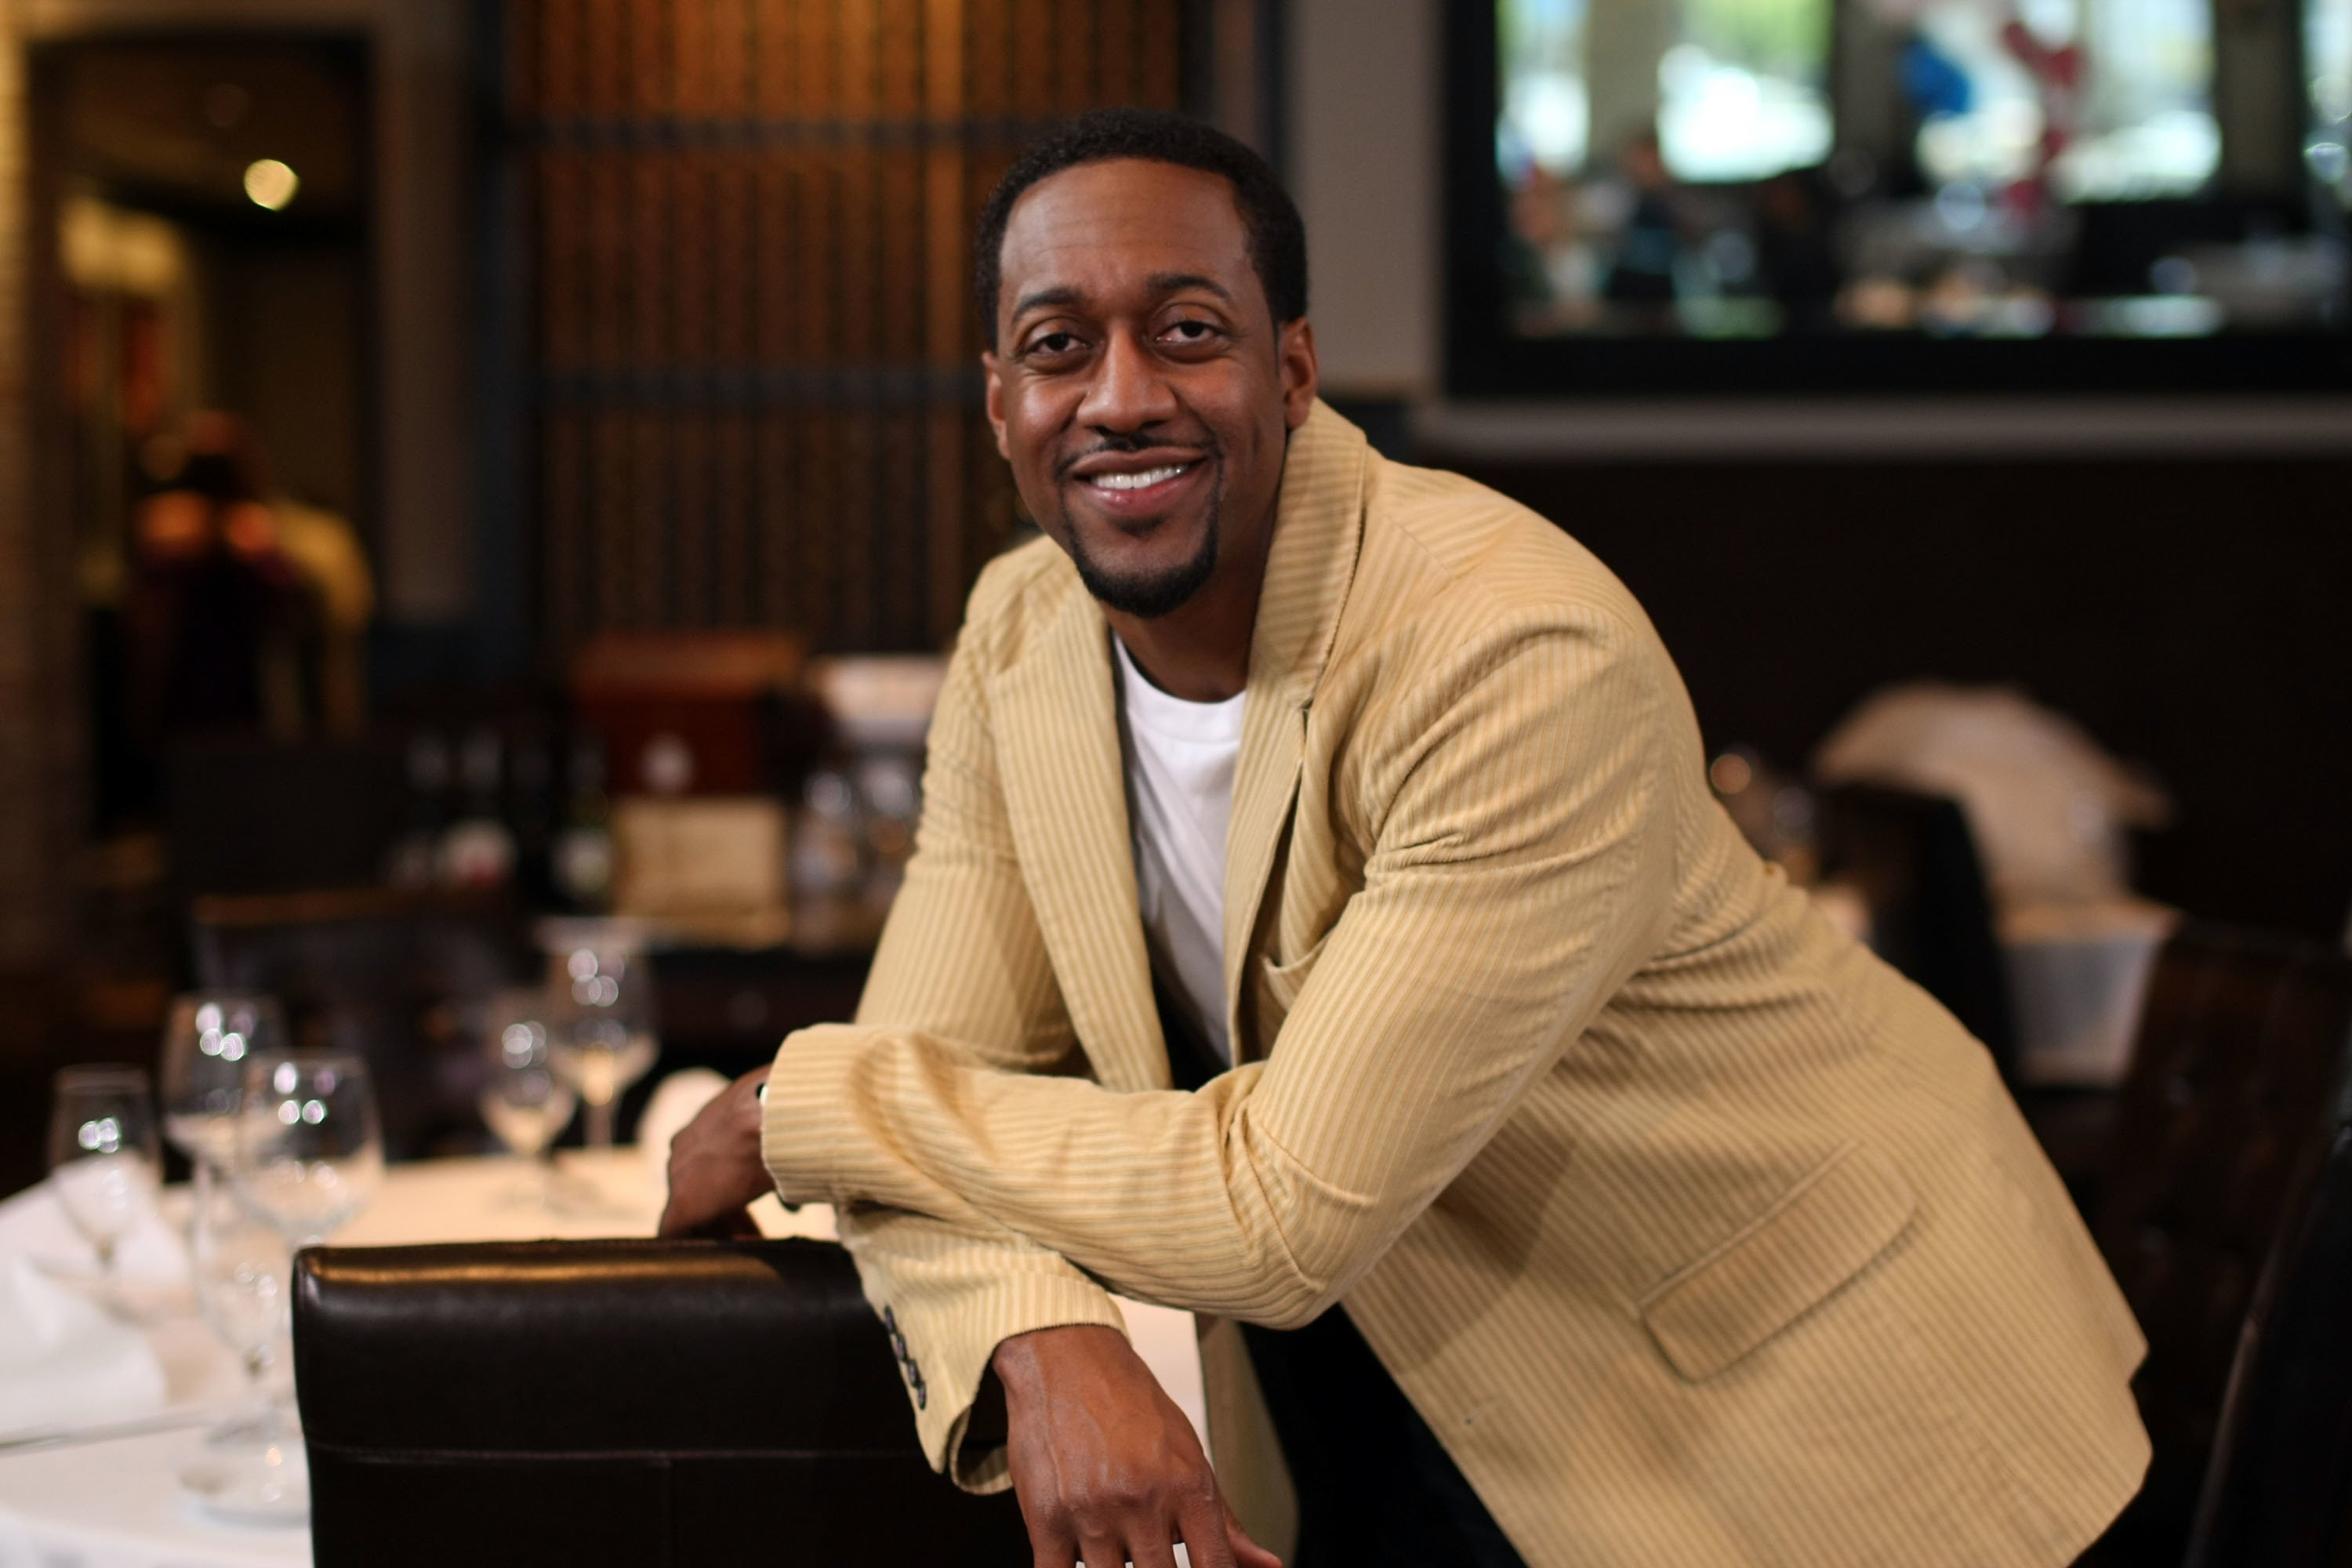 A portrait of Jaleel White at a restaurant | Source: Getty Images/GlobalImagesUkraine